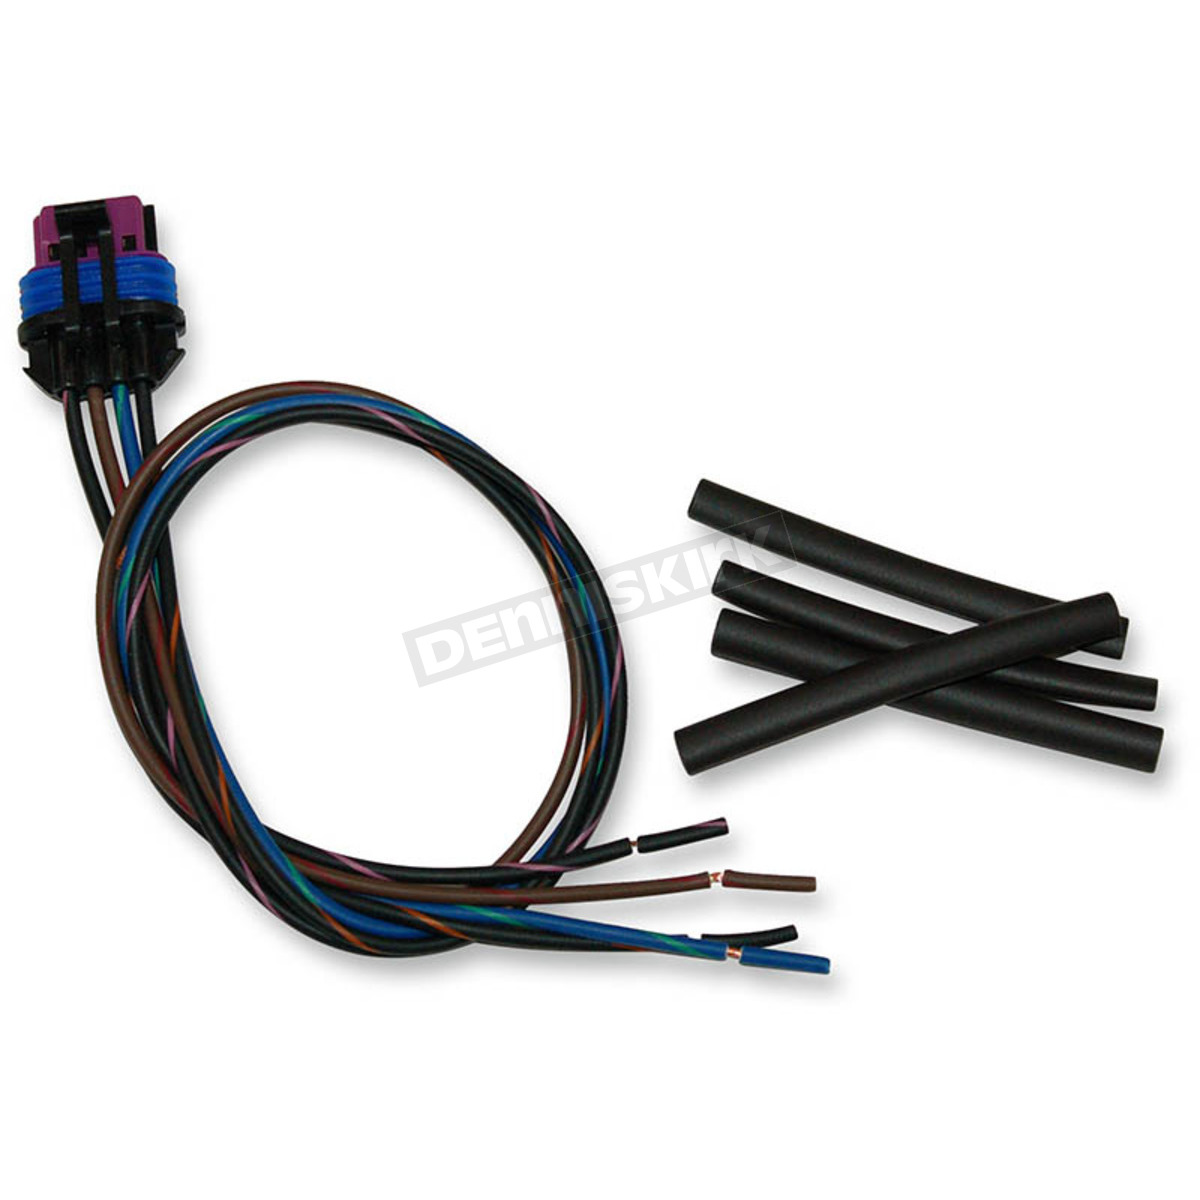 Namz Custom Cycle Products Delphi Connector W Wire Pigtails Pt Harley Davidson Wiring Connectors 15354716 B